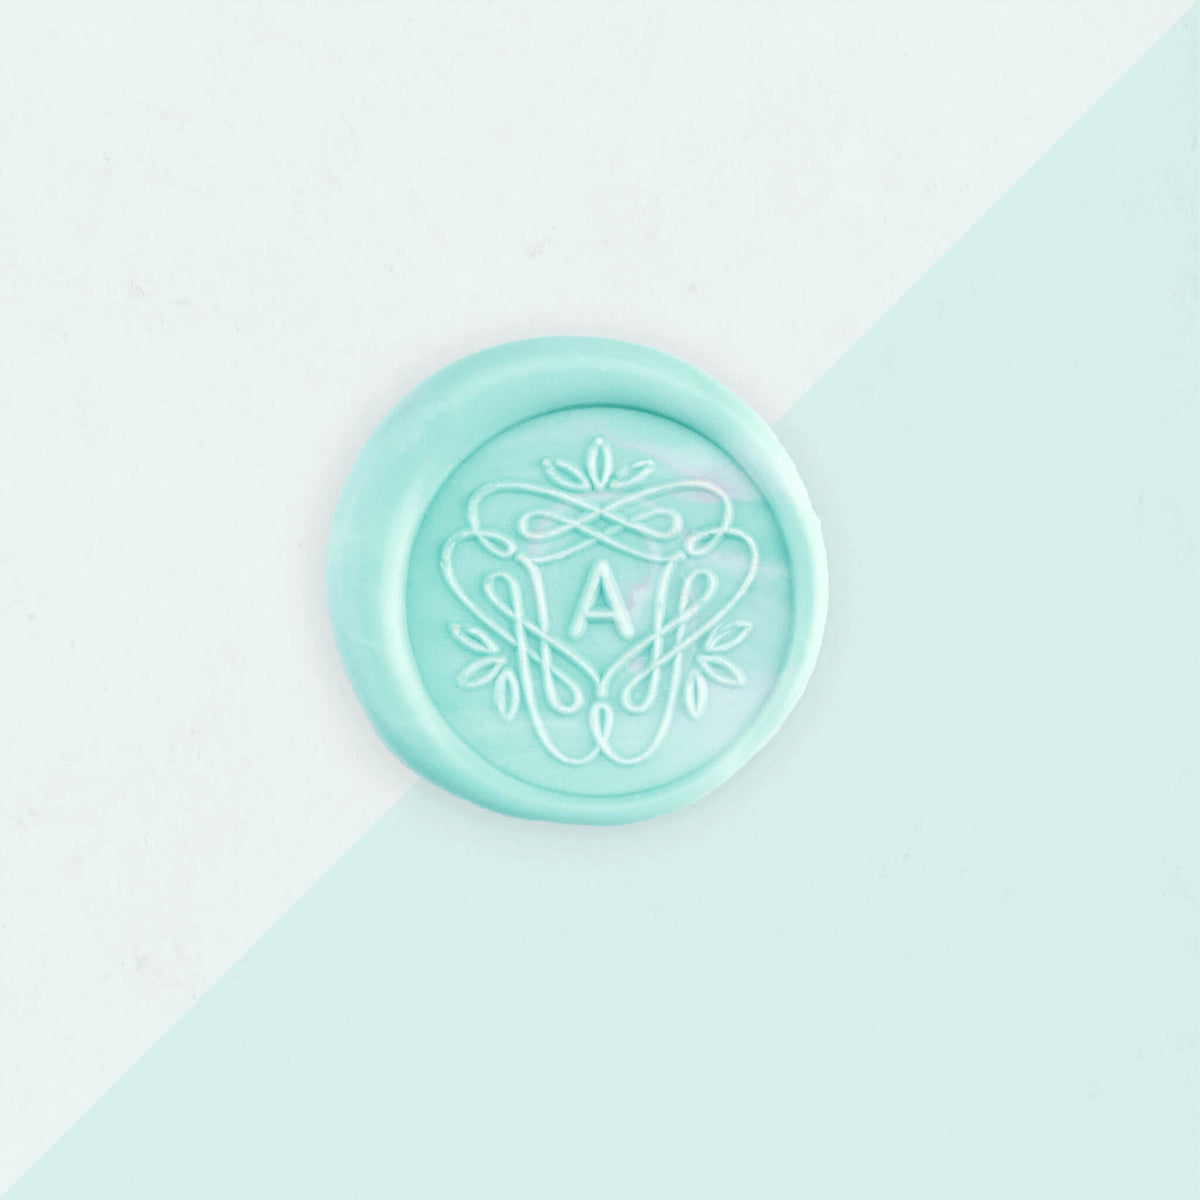 Wax Seal Stamp - Framed Monogram